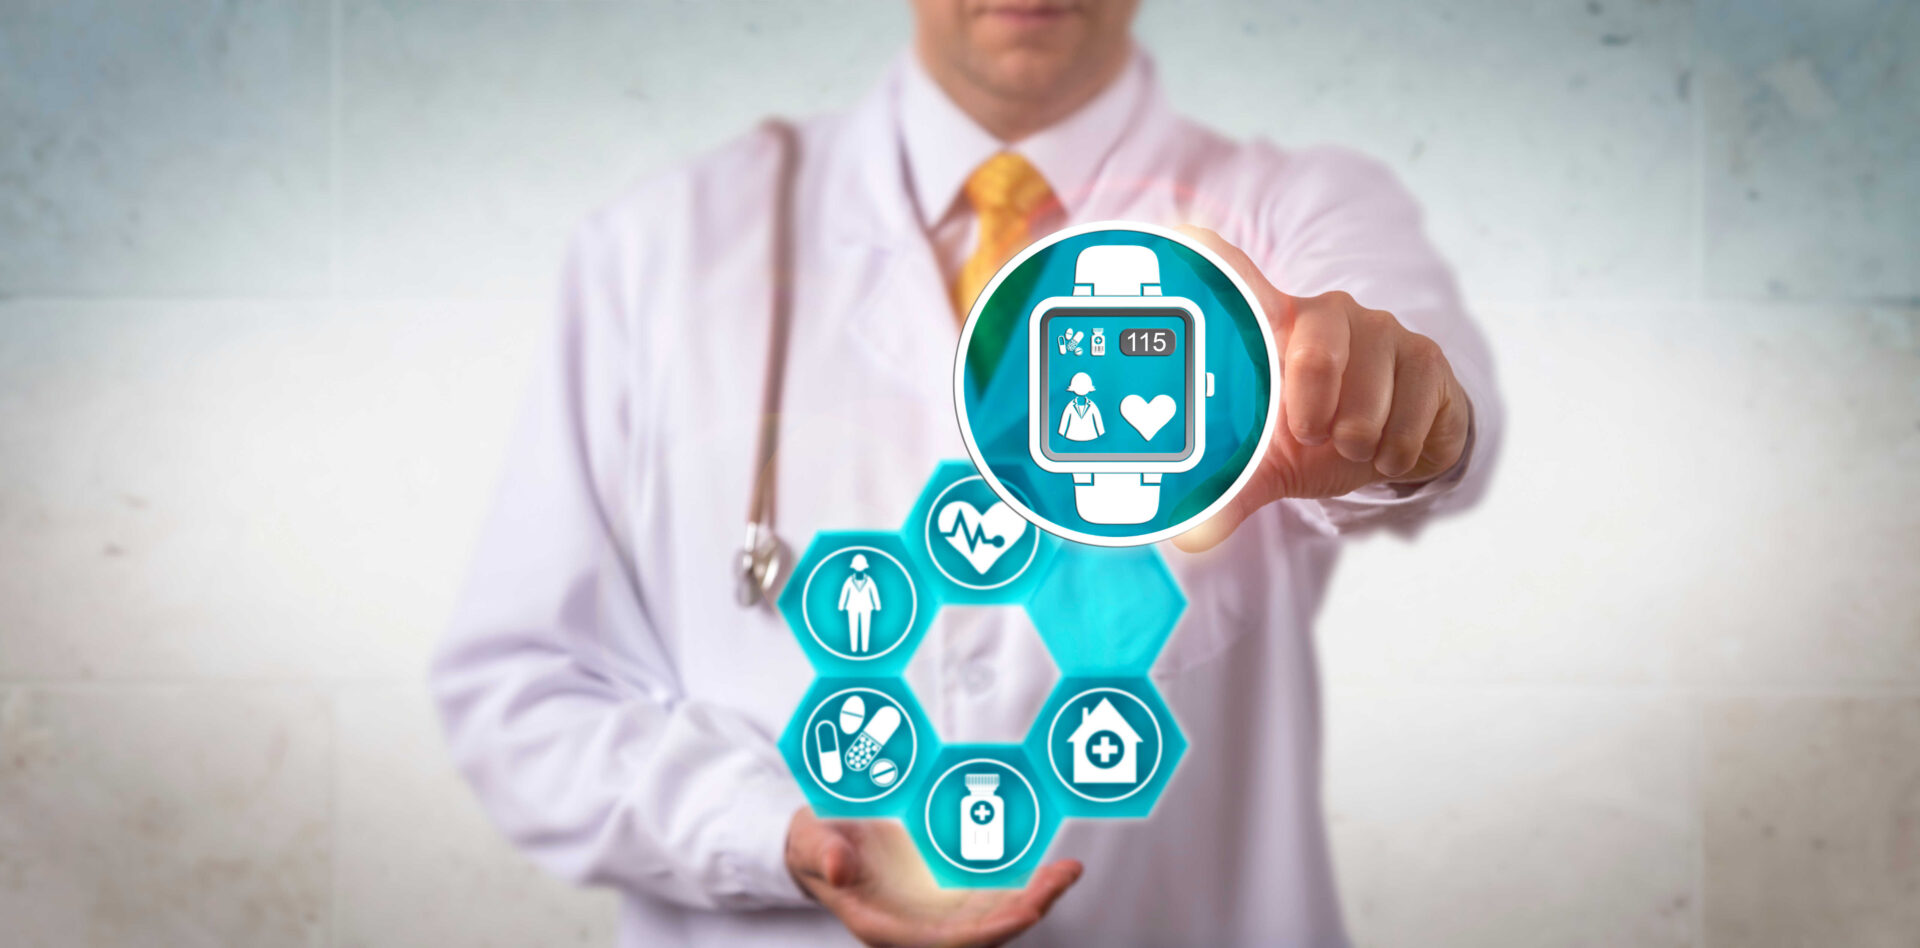 healthcare_IoMT